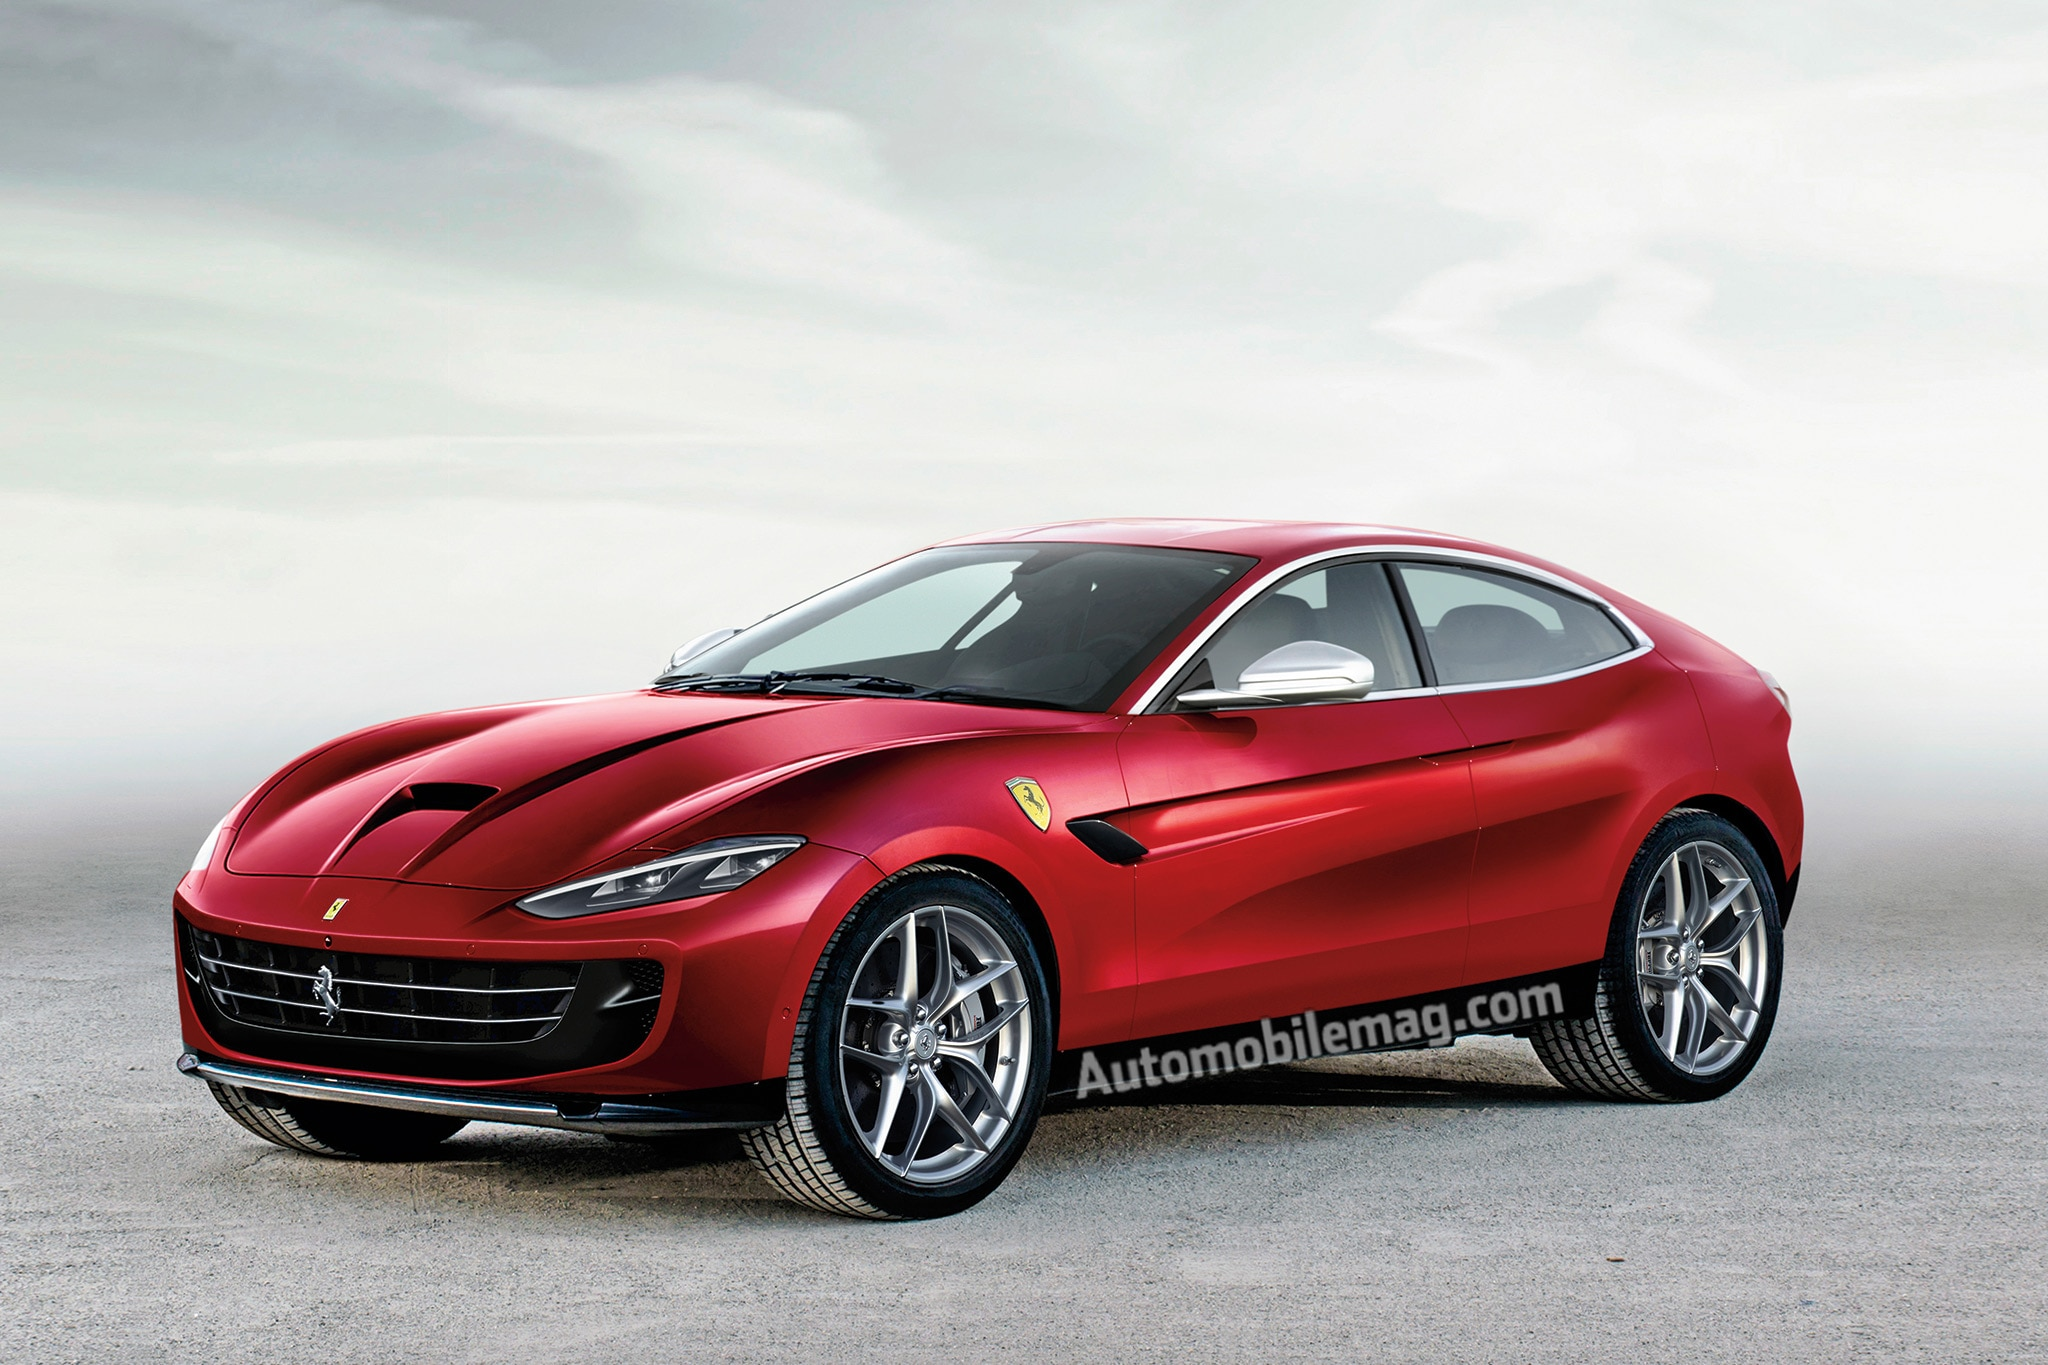 2021 Ferrari F16X SUV Illustration